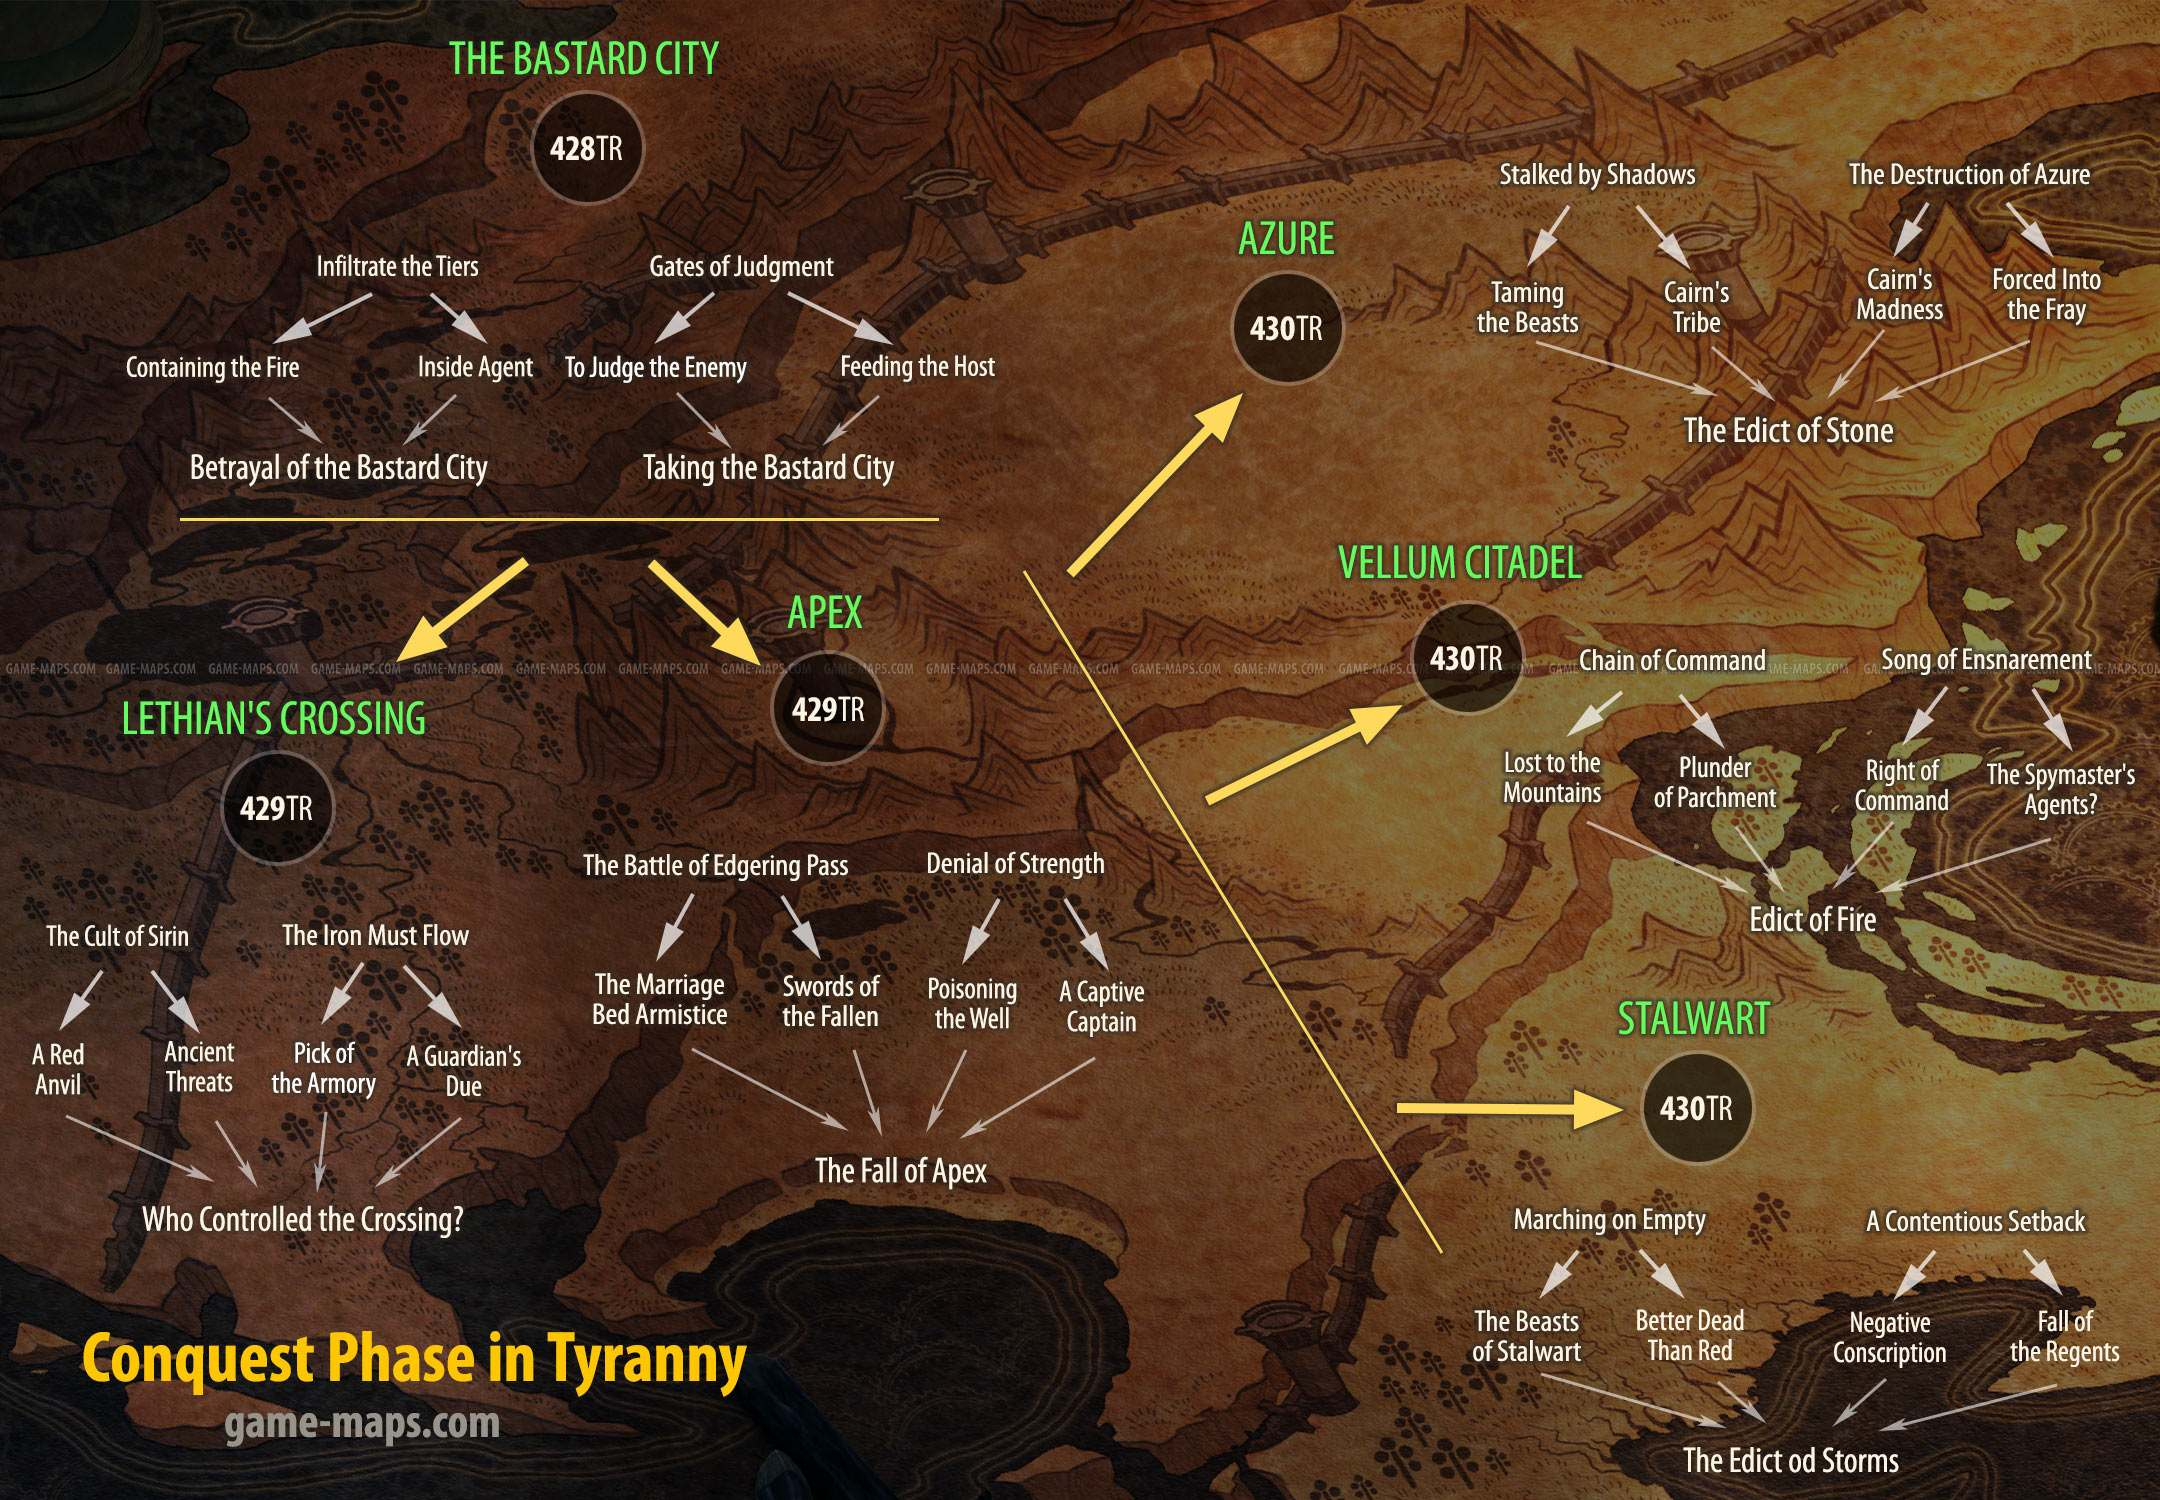 Tyranny Conquest Phase | game maps.com